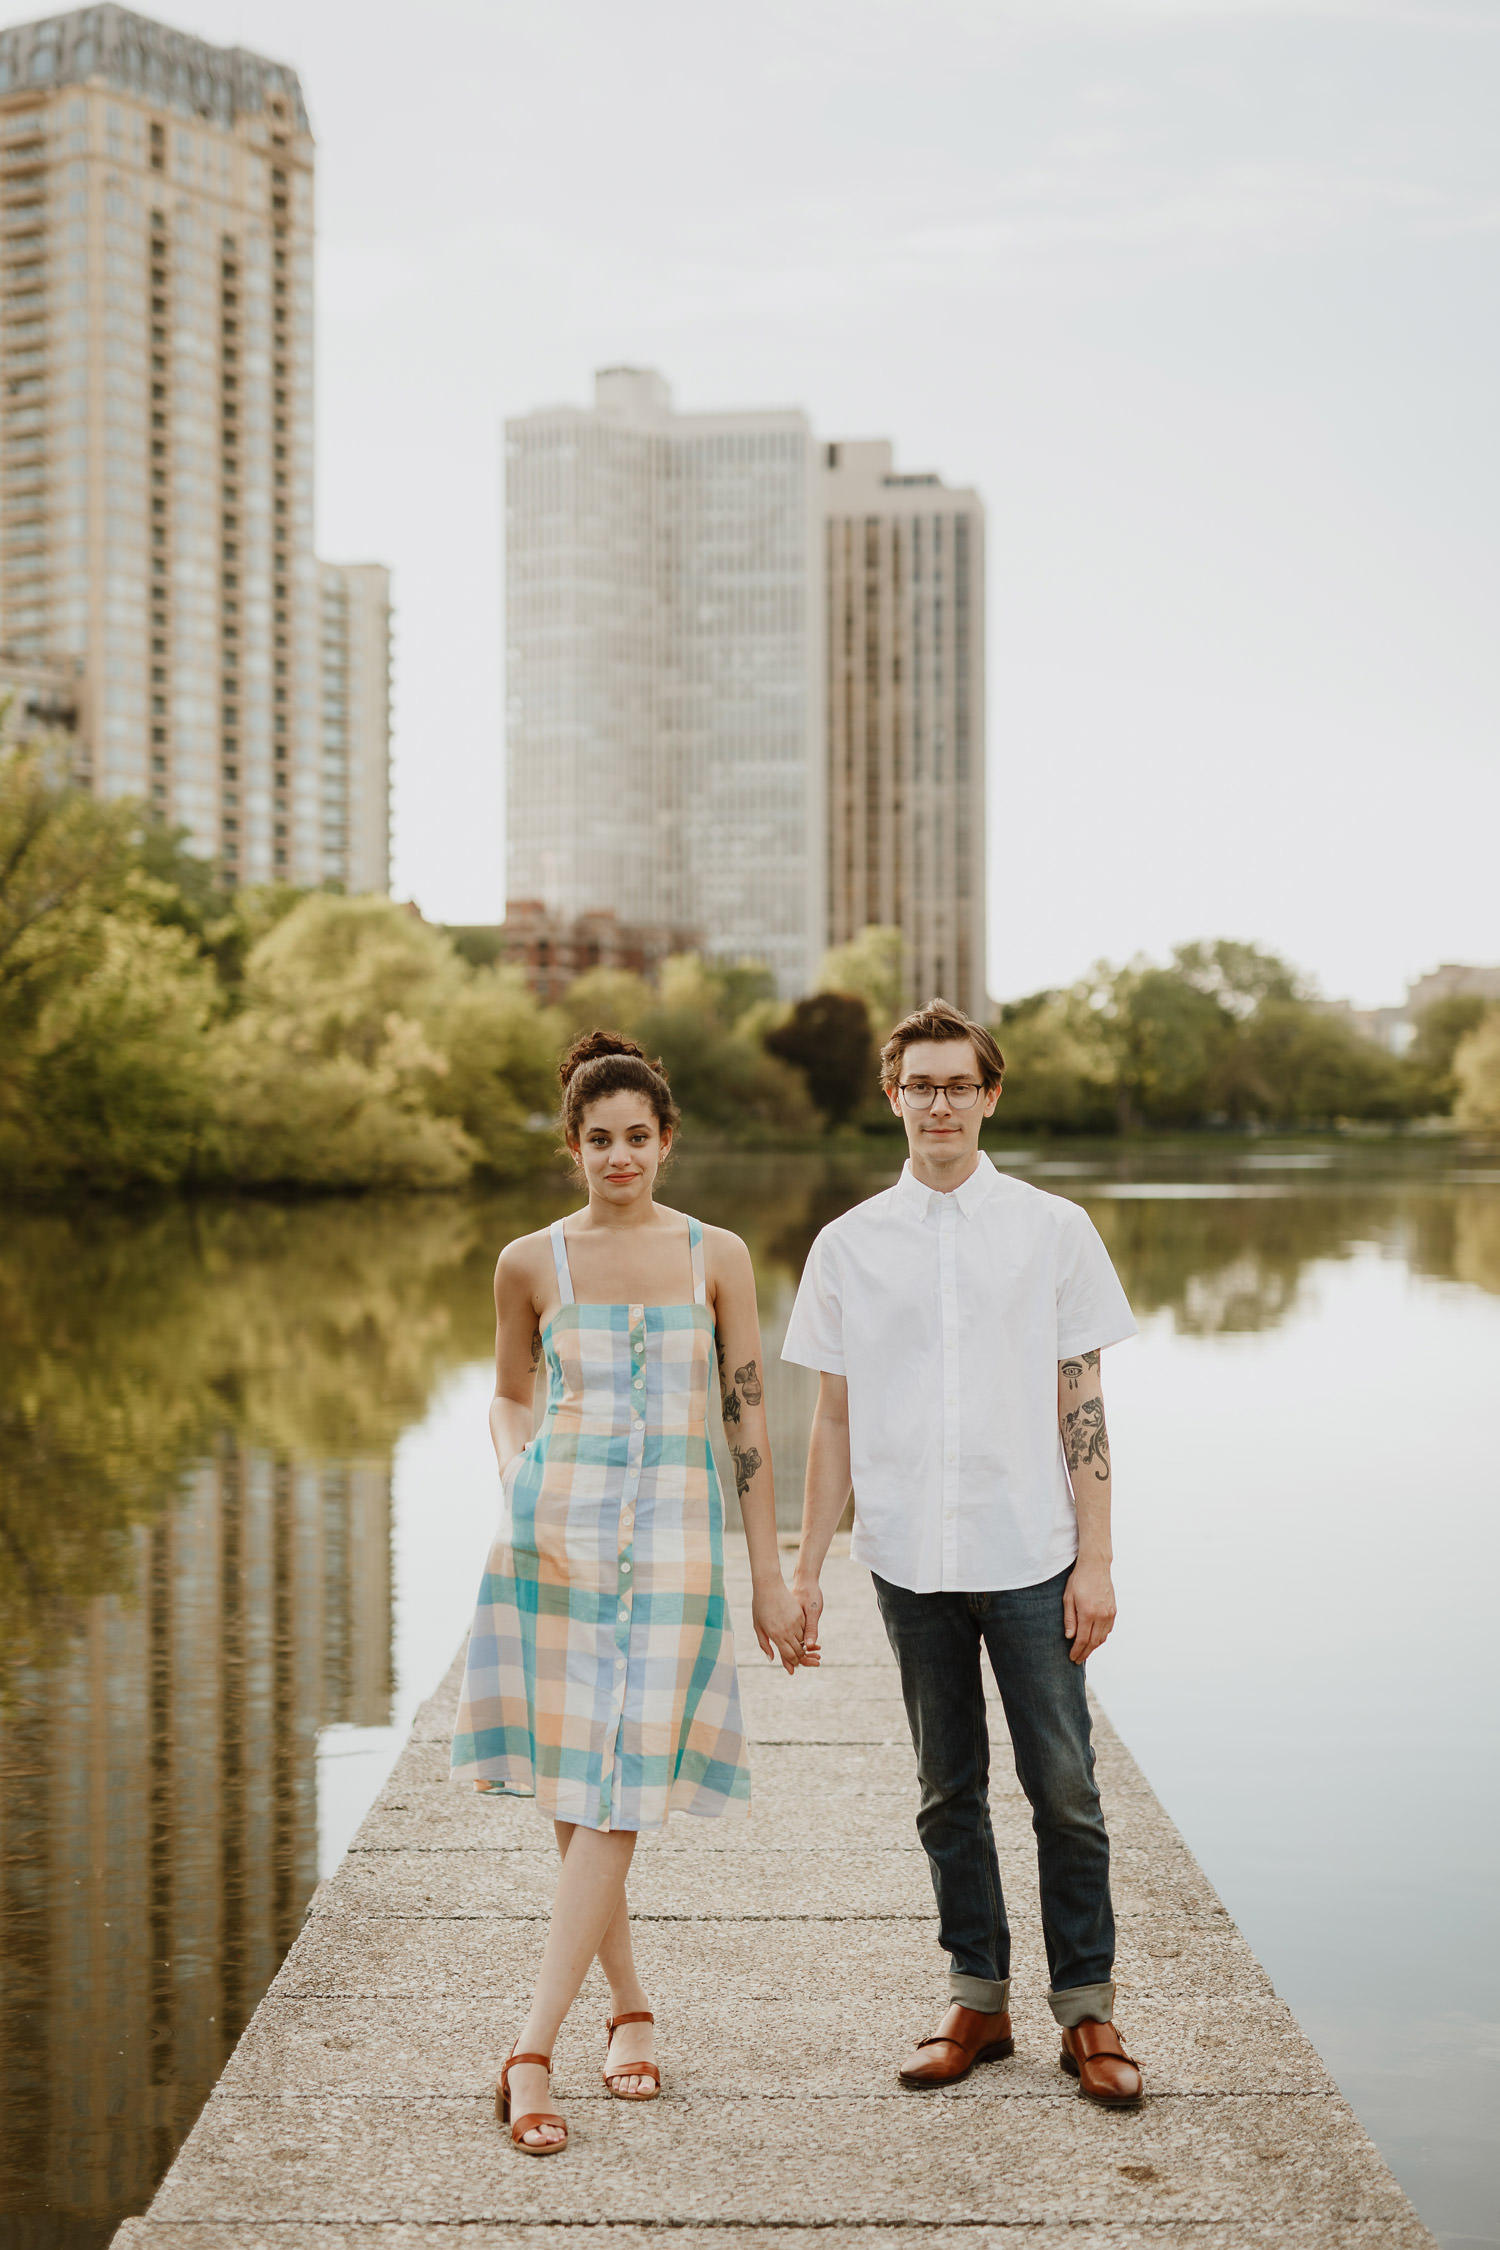 Portraits of a hipster couple photographed during the engagement shoot at North Pond in Lincoln Park